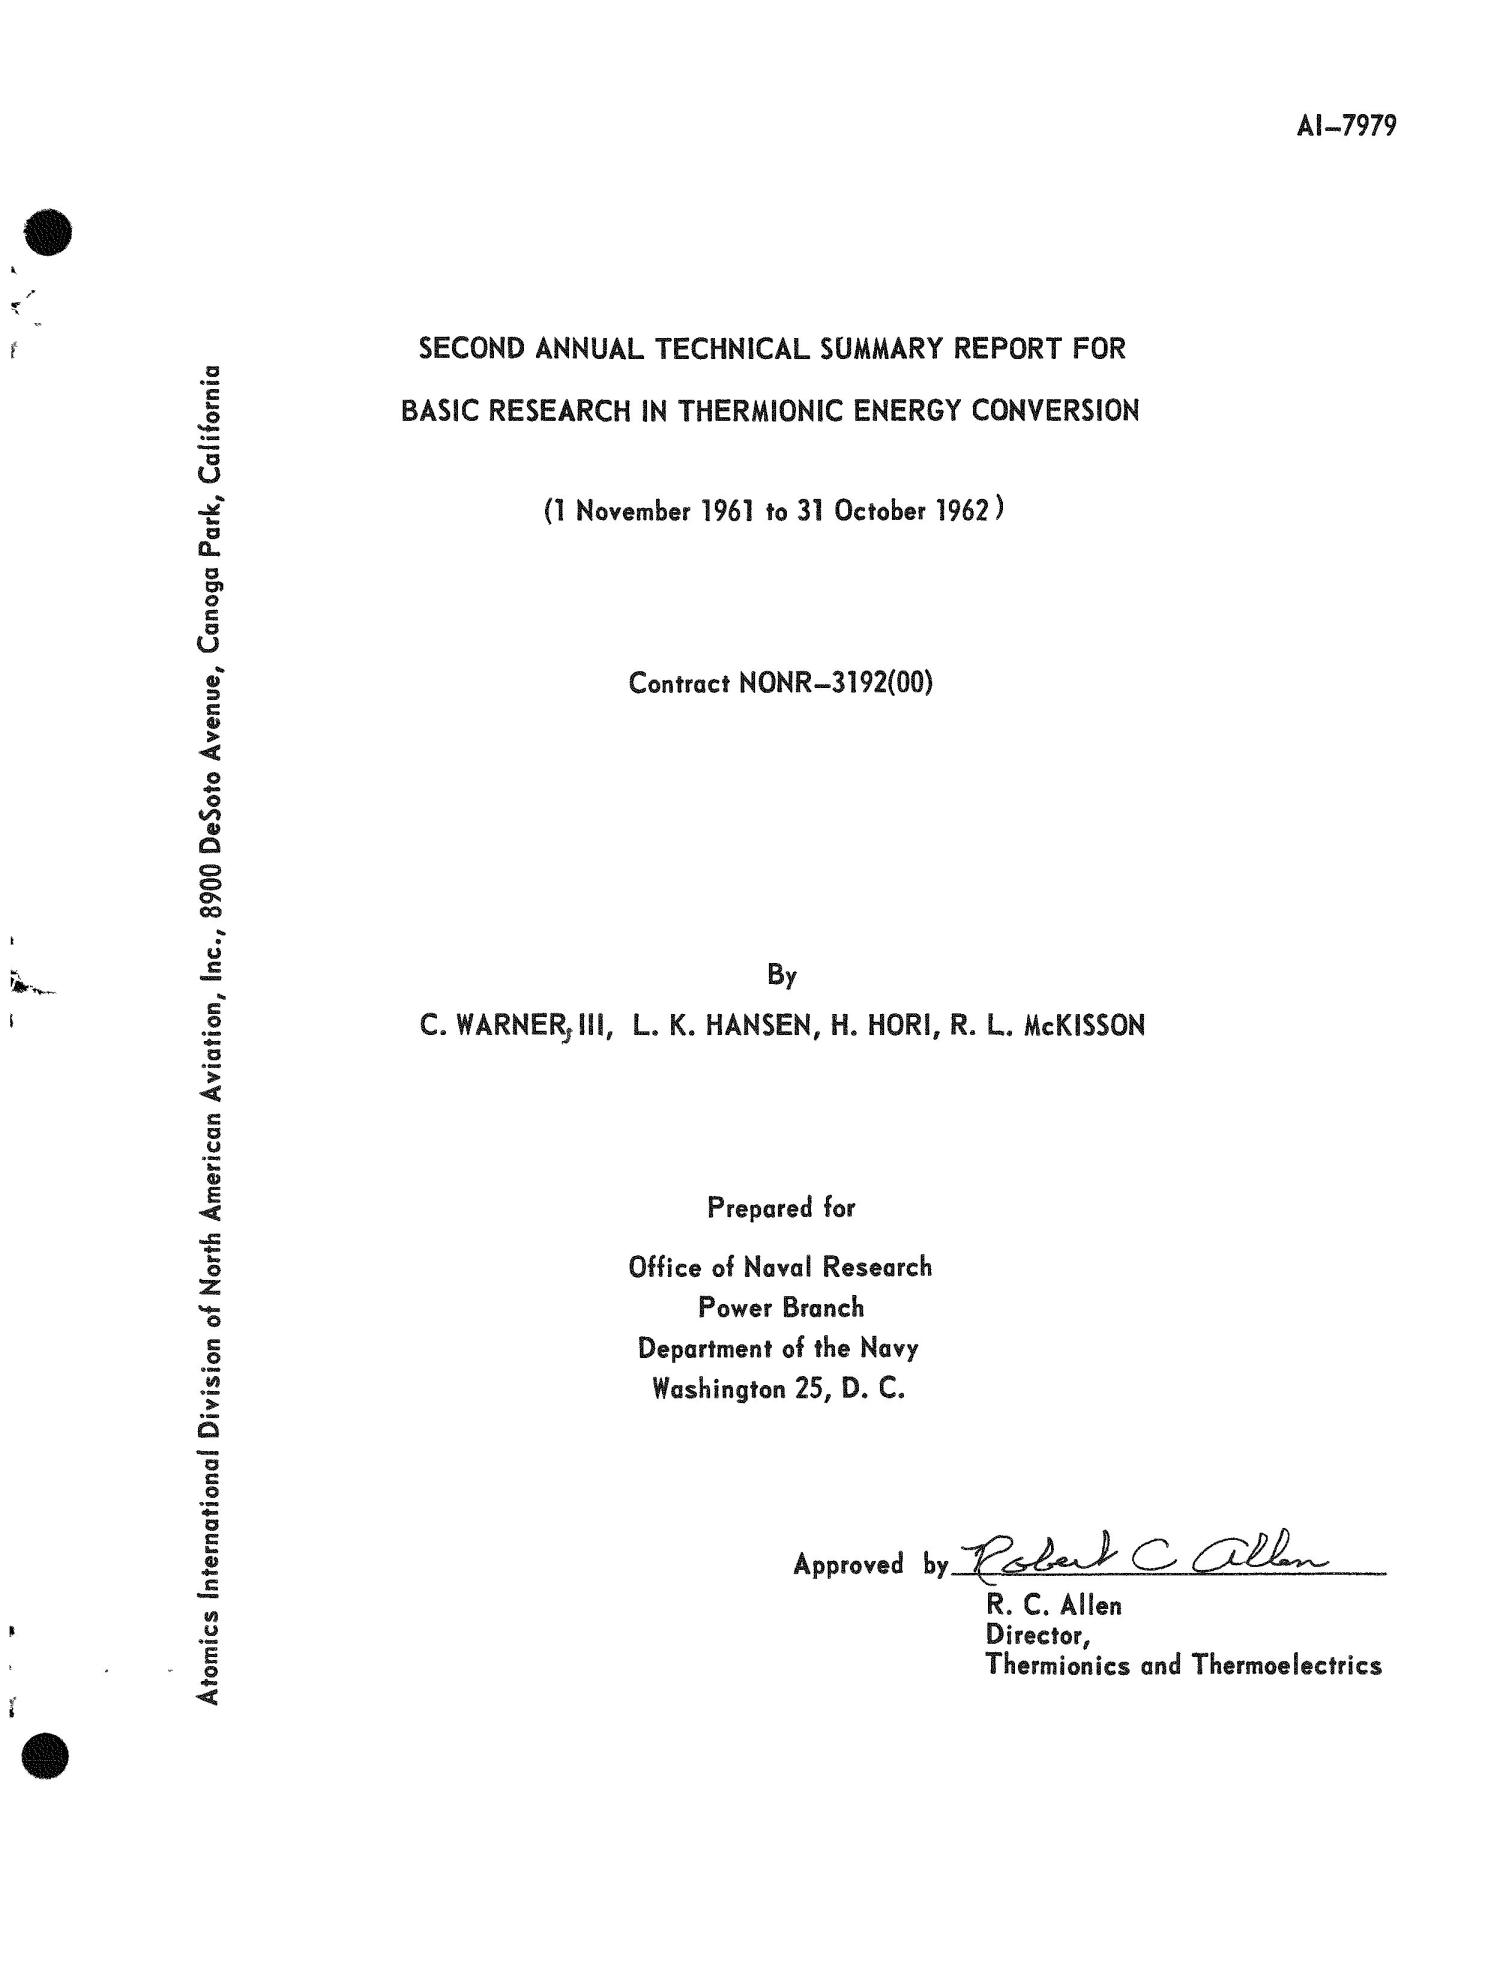 Second Annual Technical Summary Report for Basic Research in Thermionic Energy Conversion. Covering Period November 1, 1961 to October 31, 1962                                                                                                      [Sequence #]: 1 of 145